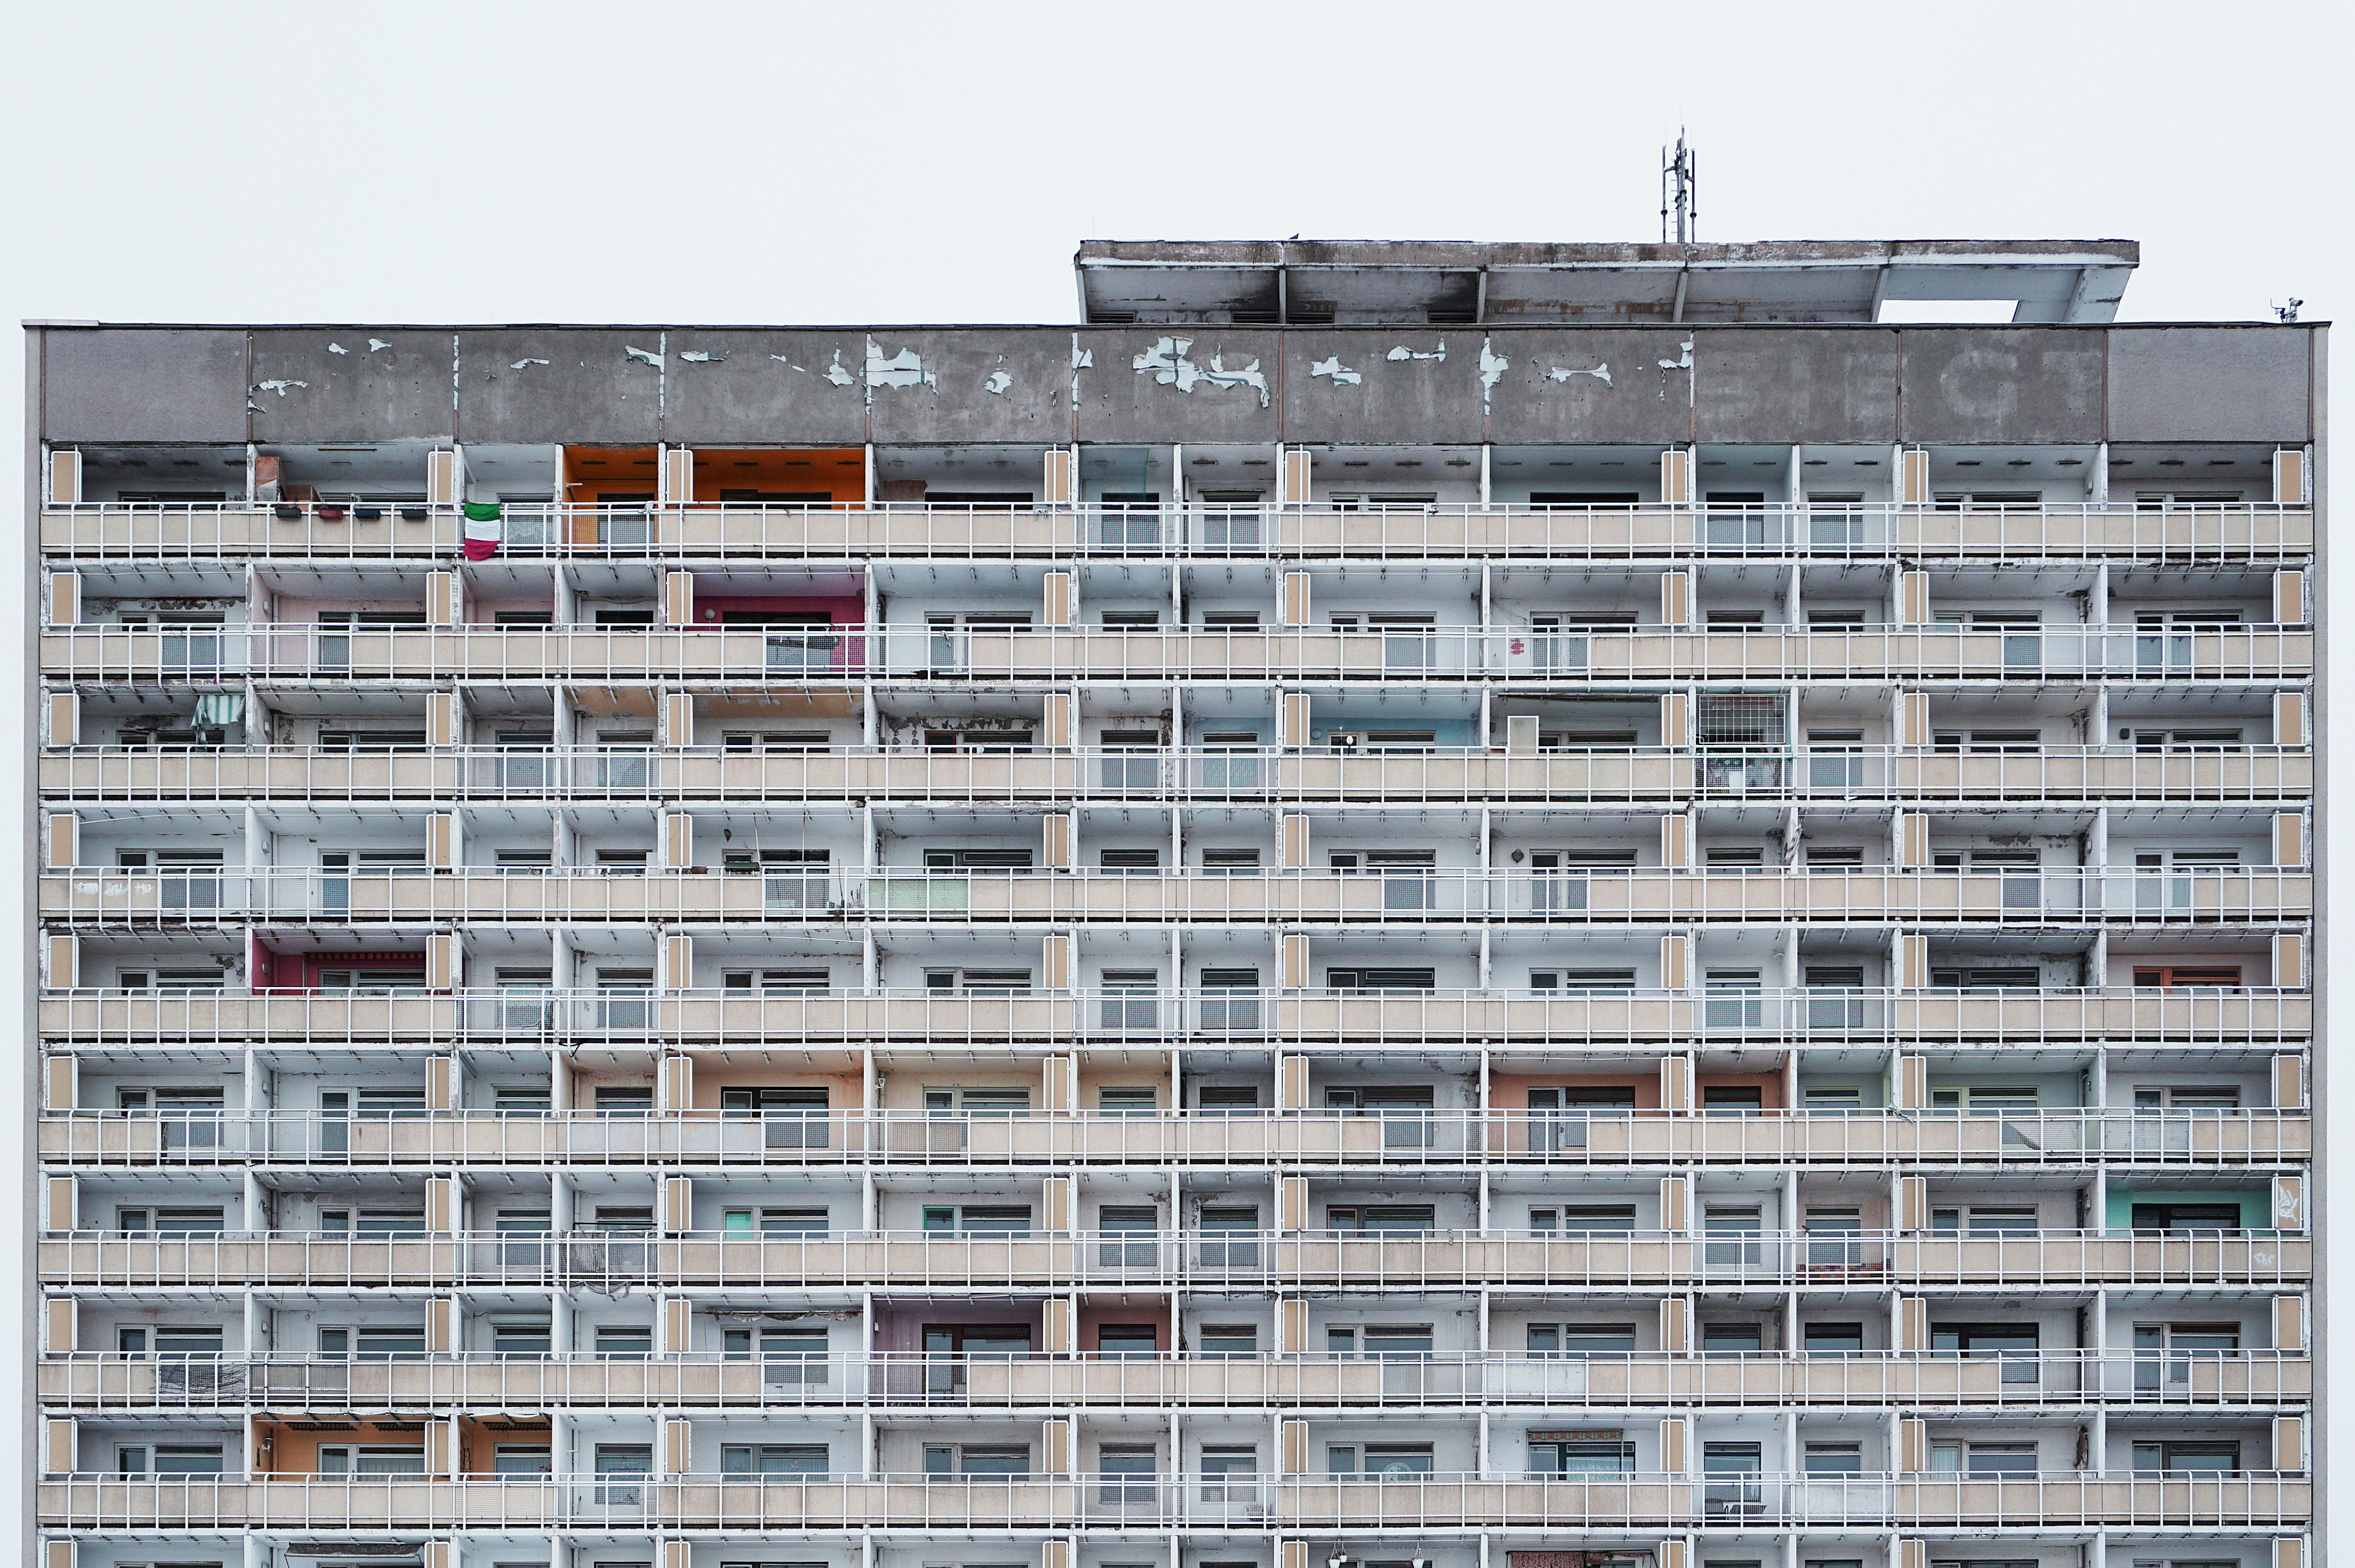 Rundown urban high-rise apartments in Dresden, Saxony, Germany on a gray day